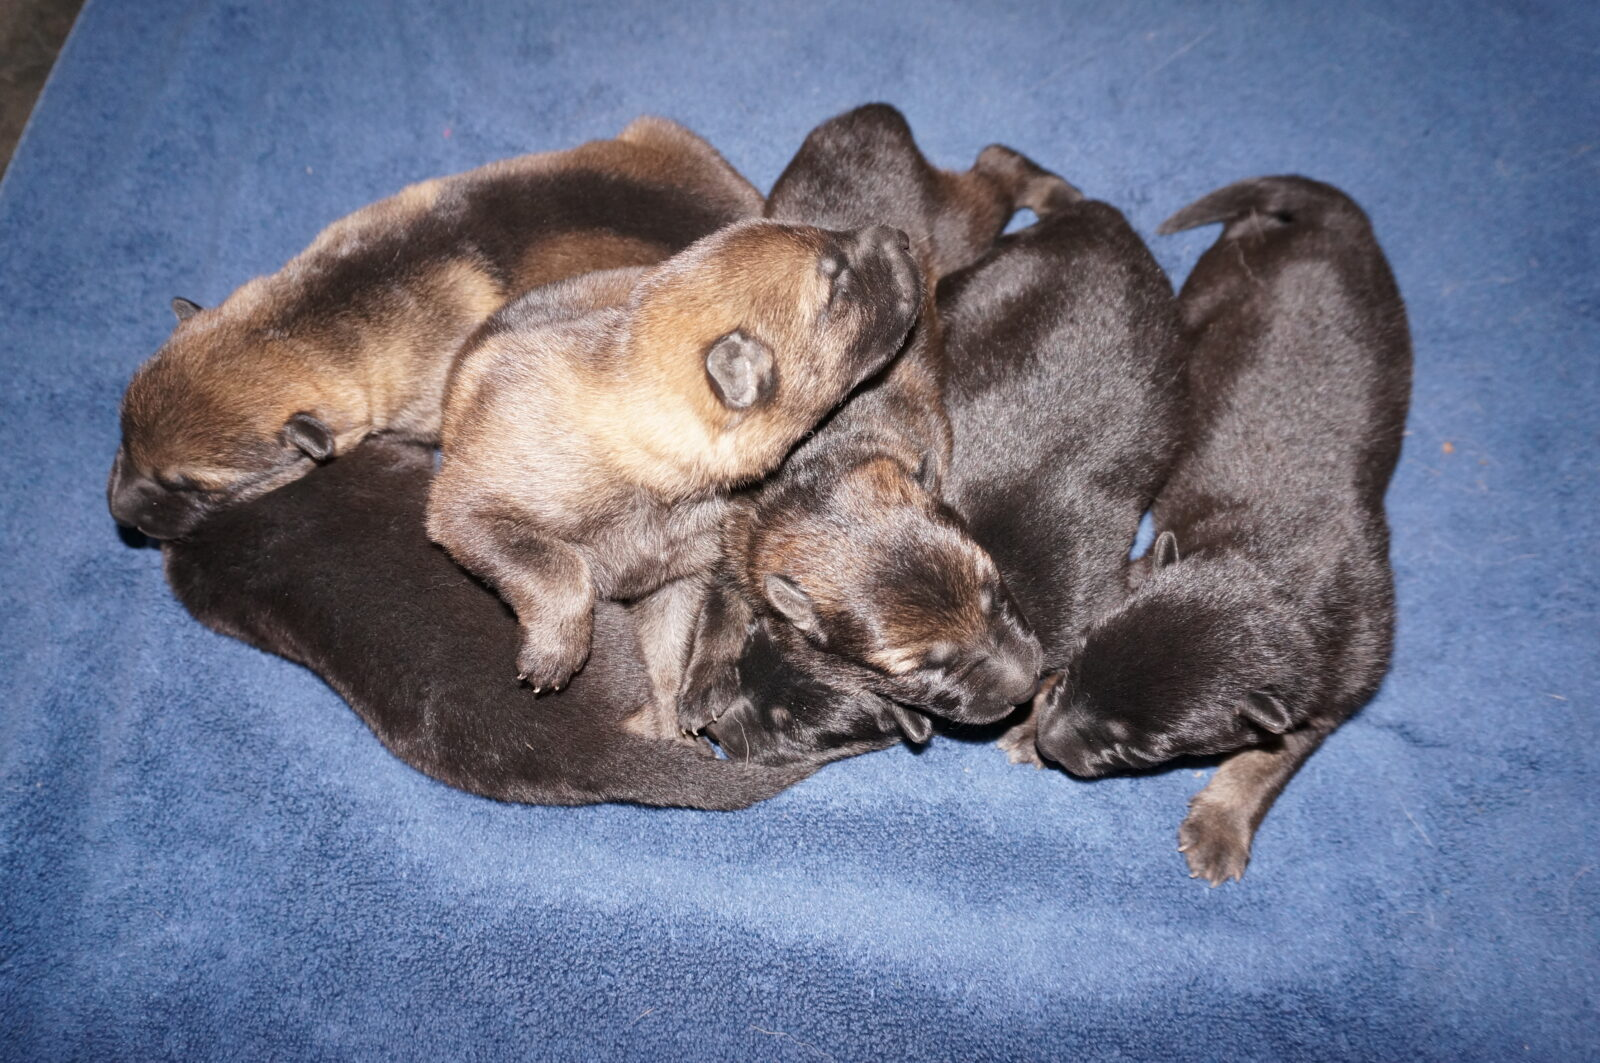 Image search: Rottweiler Puppies For Sale In Michigan